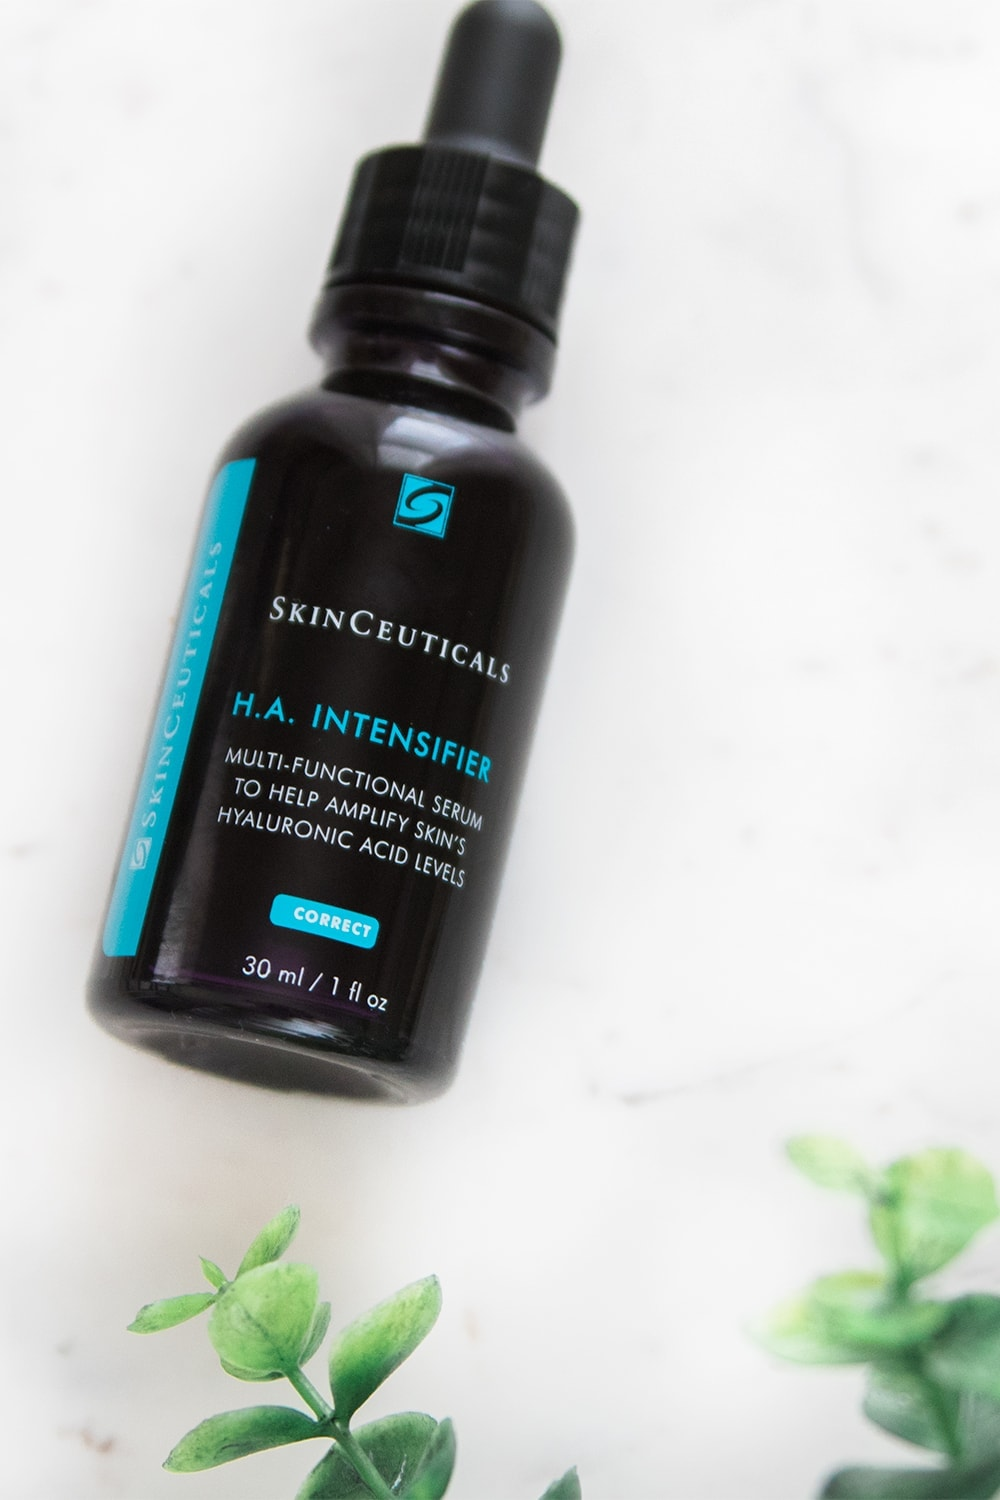 Skin Ceuticals HA Intensifier - the perfect product to extend the results of fillers!